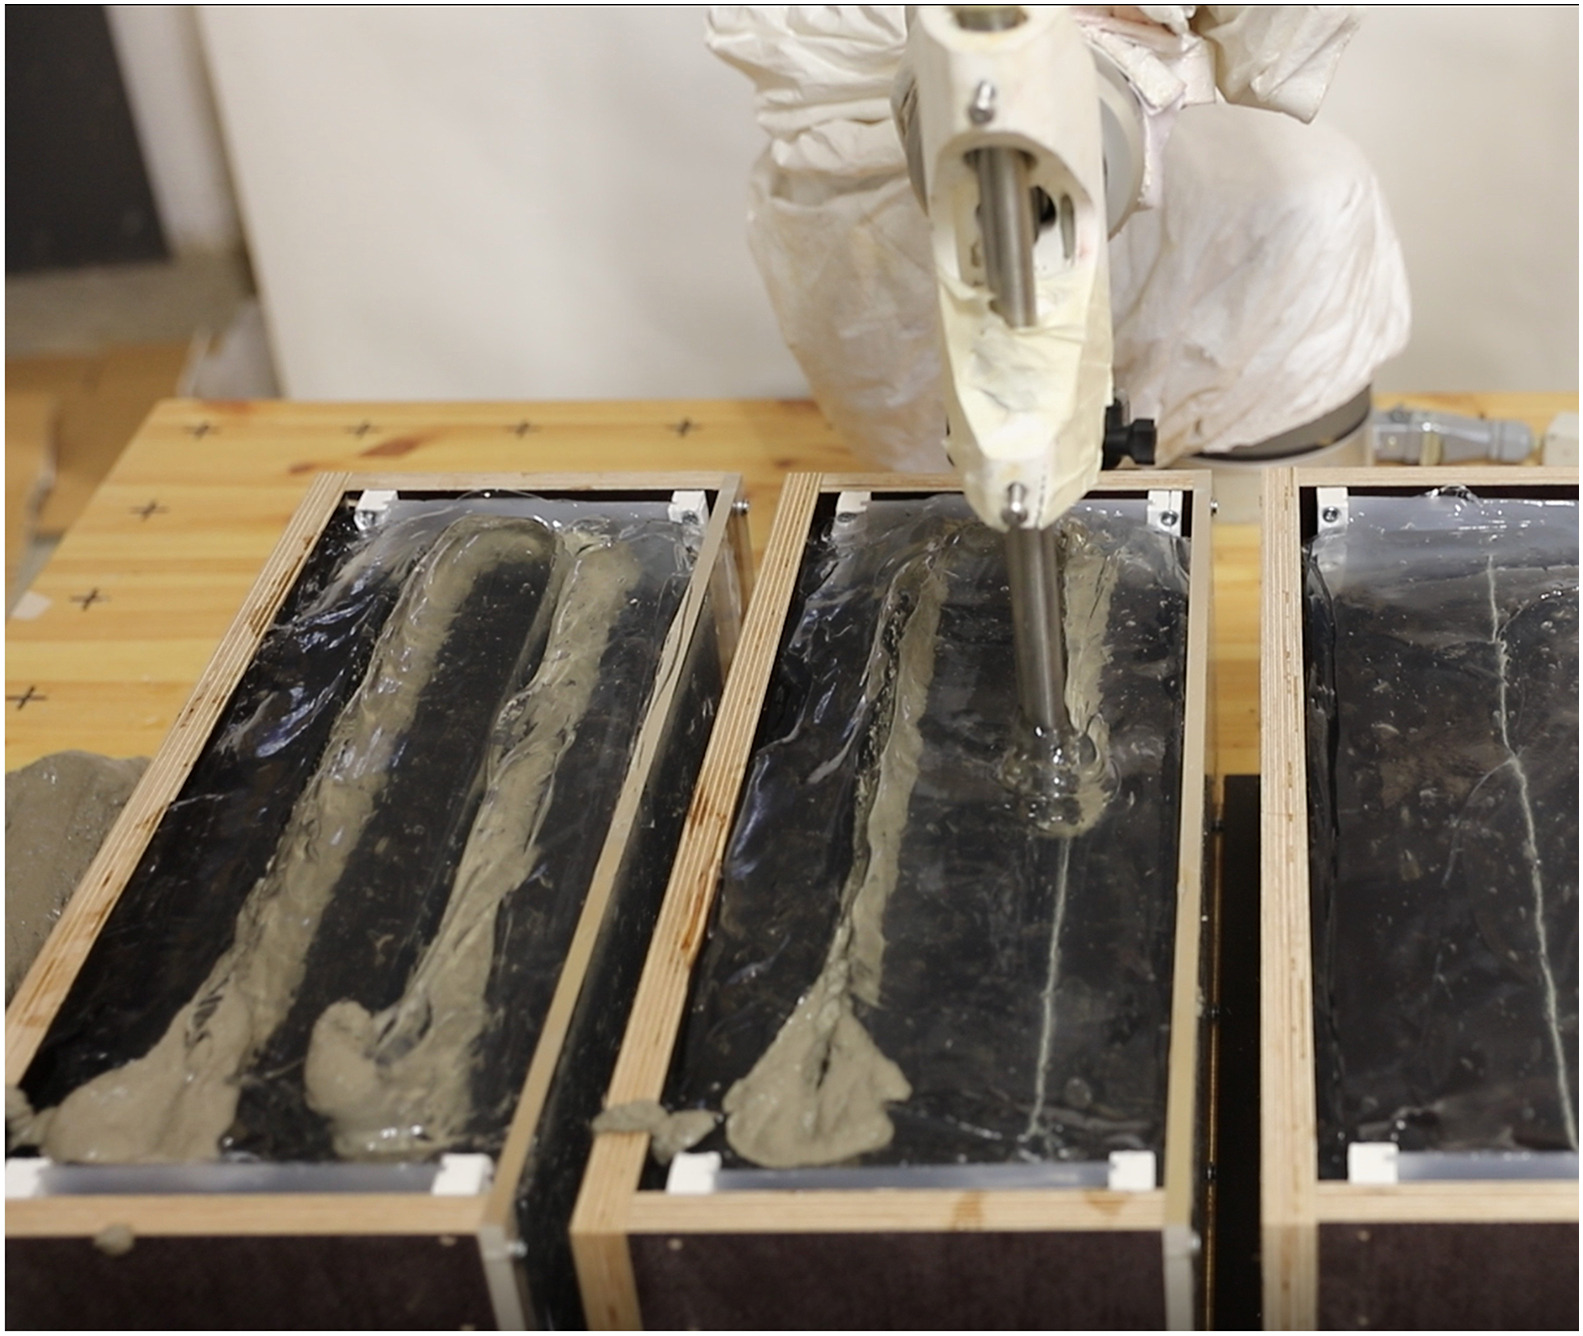 Printing around pre-installed steel reinforcement bars using the I3DCP process. Photo via TU Braunchsweig.